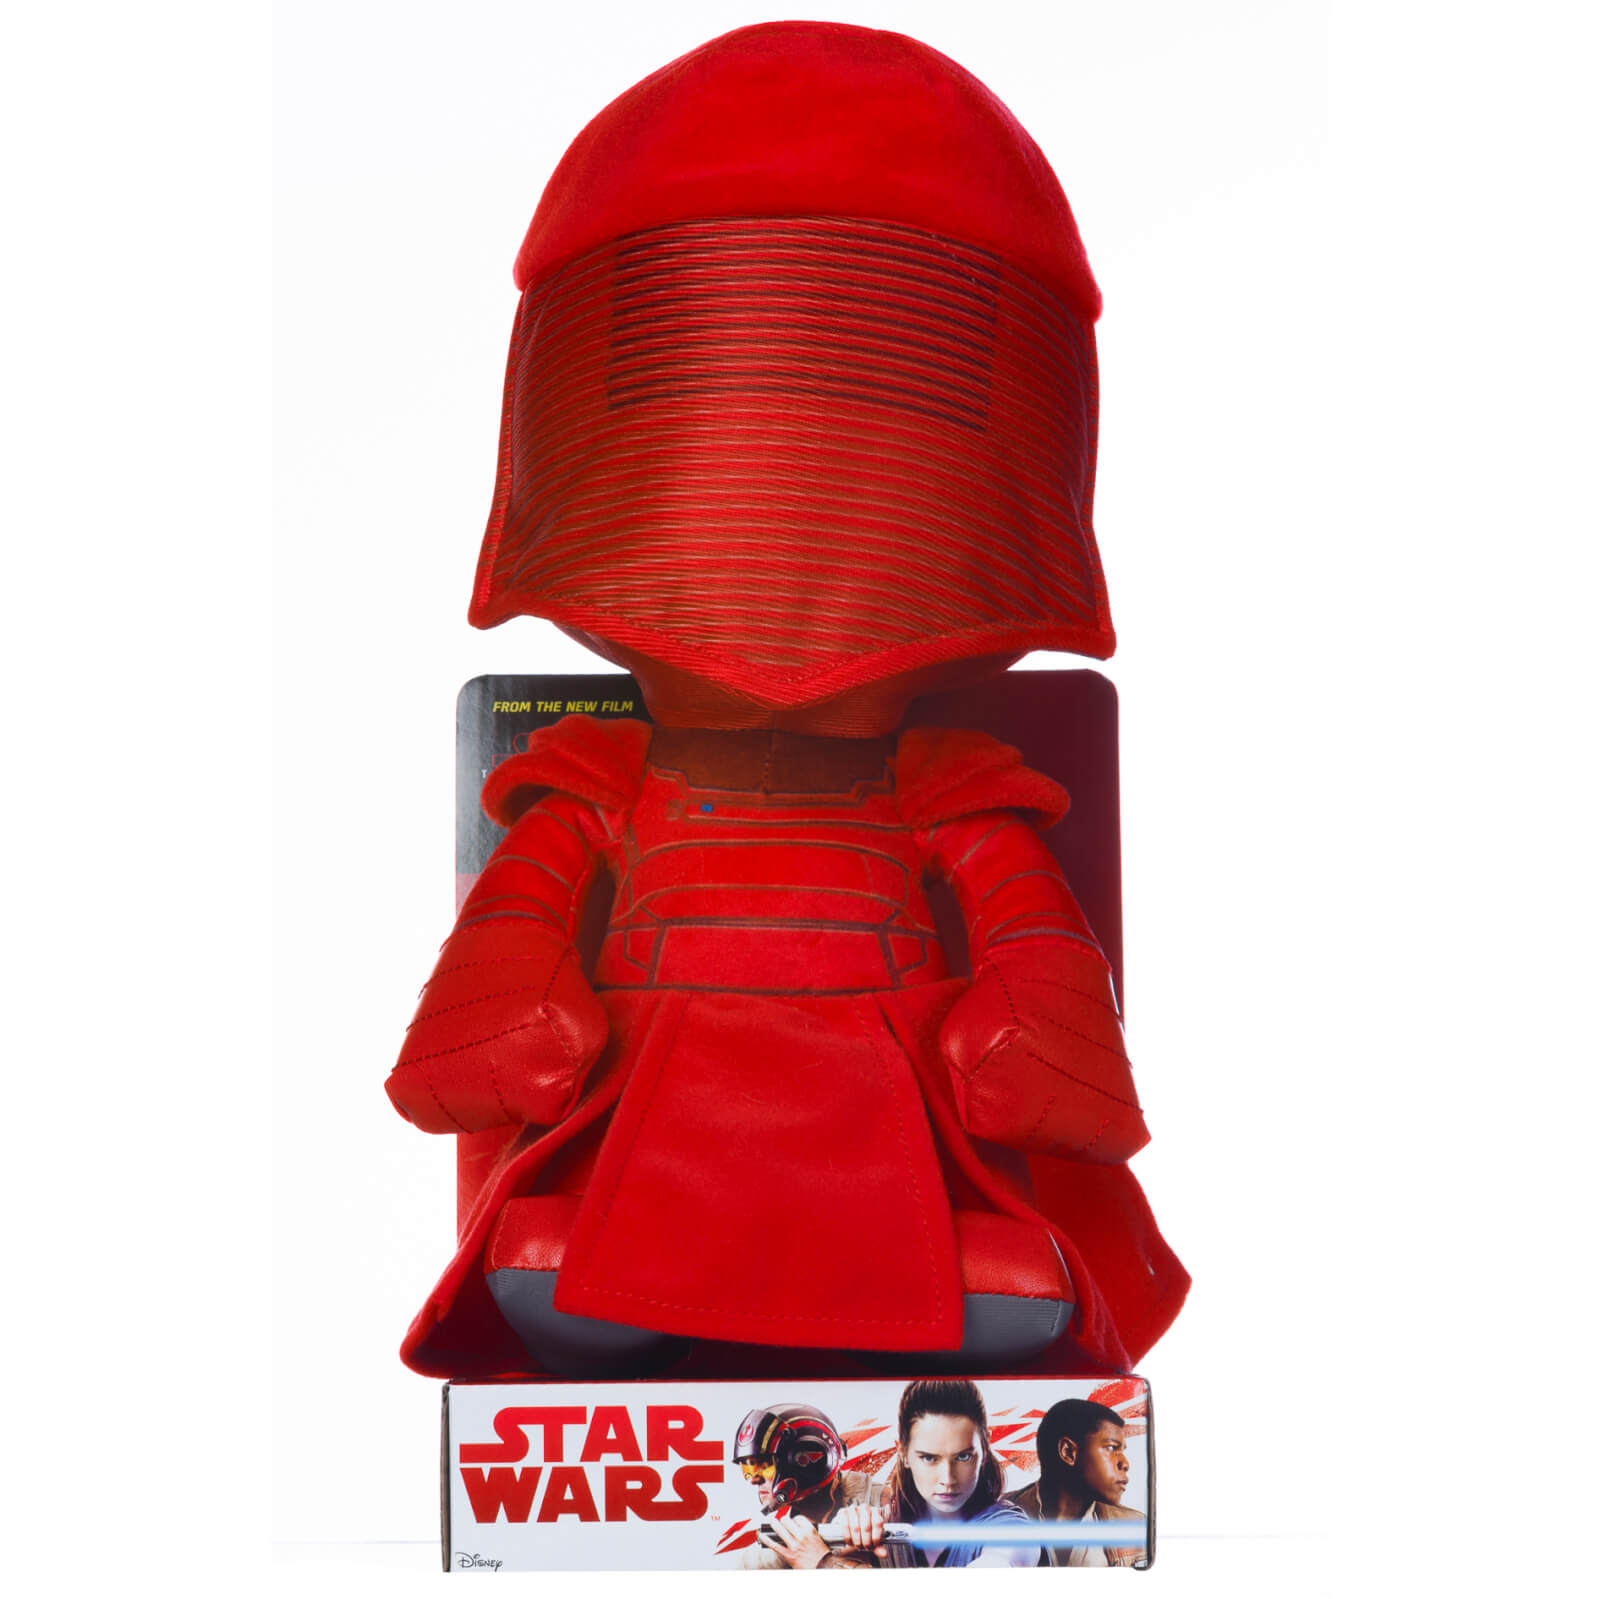 "Star Wars Episode 8 - The Last Jedi - 10"""" Praetorian Guard Plush"